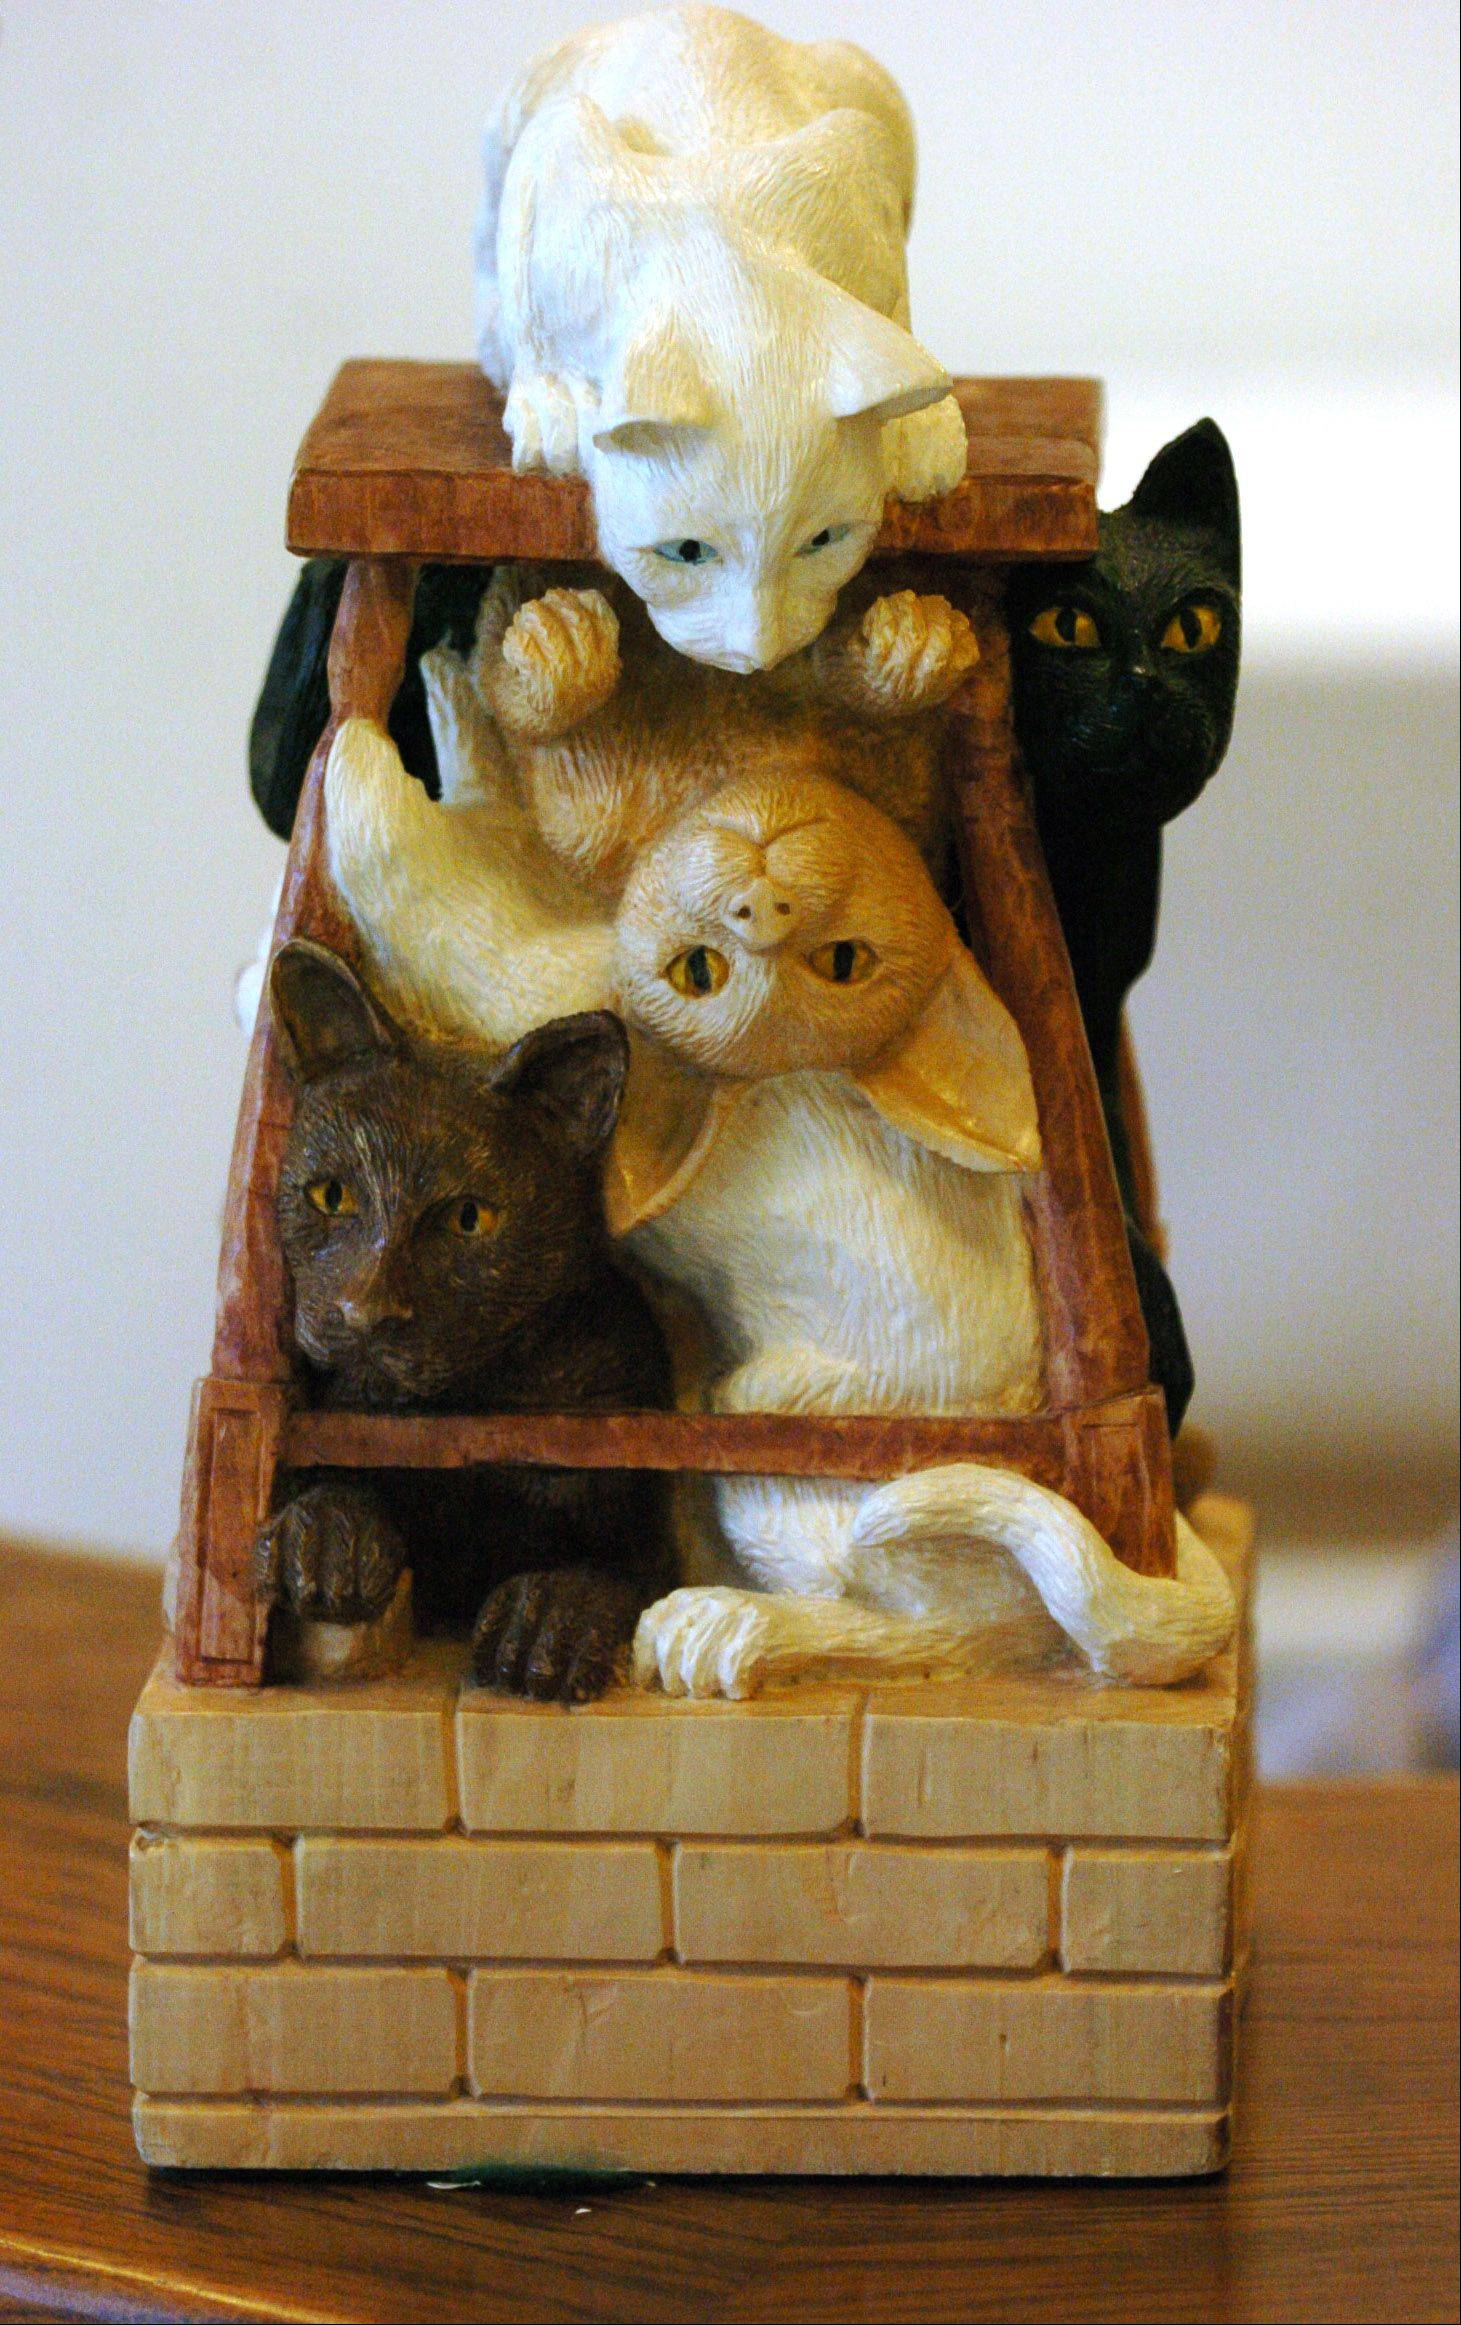 A playful wood carving of cats, done by Shelly Weiser of Naperville. Similar works will be on display and sale at the Winter Wood Wonders Festival this weekend in St. Charles.